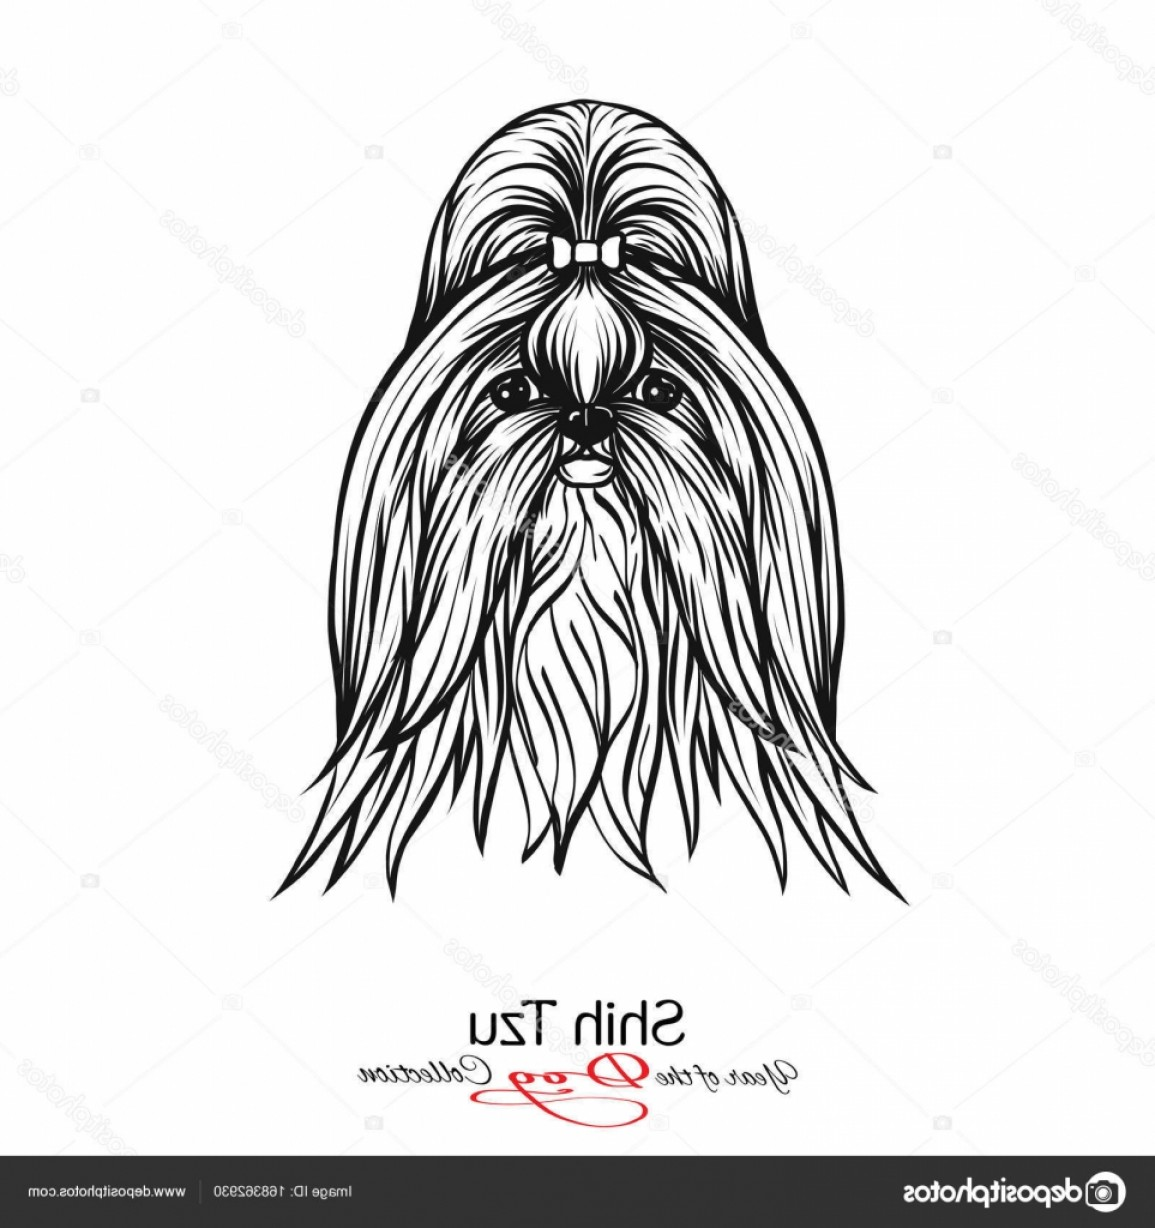 Shih Tzu Vector Siluete: Stock Illustration Shih Tzu Black And White